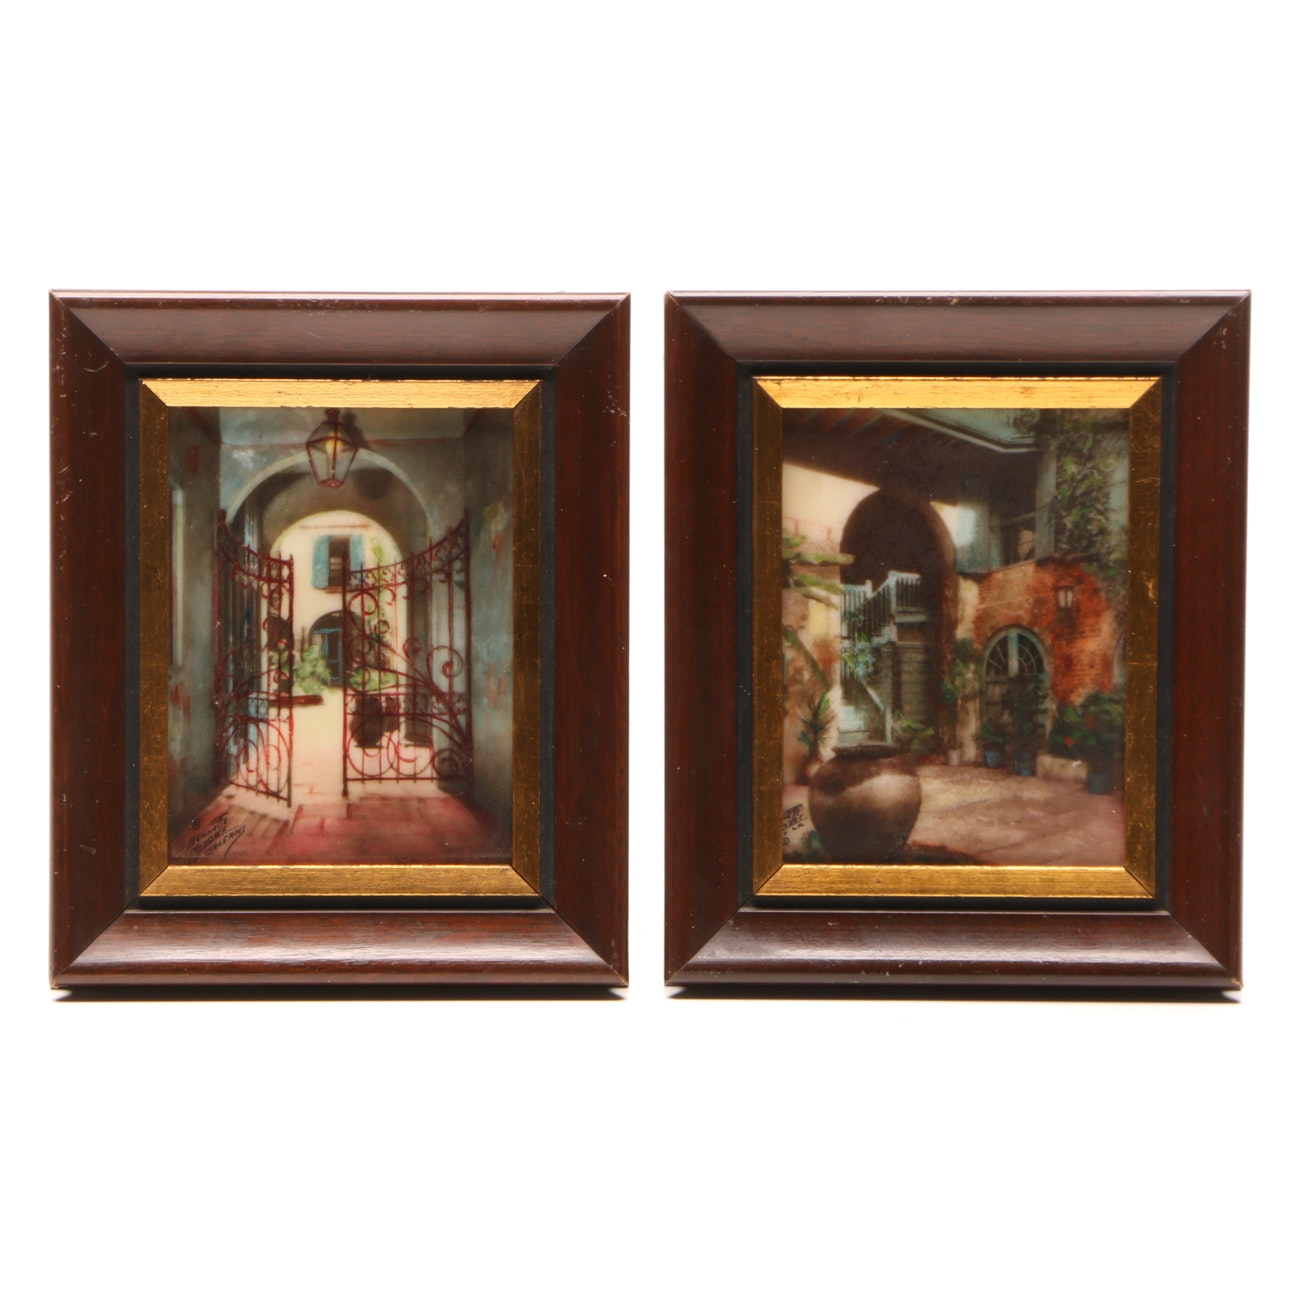 Two C. Bennette Moore Hand-colored Photographs on Composite